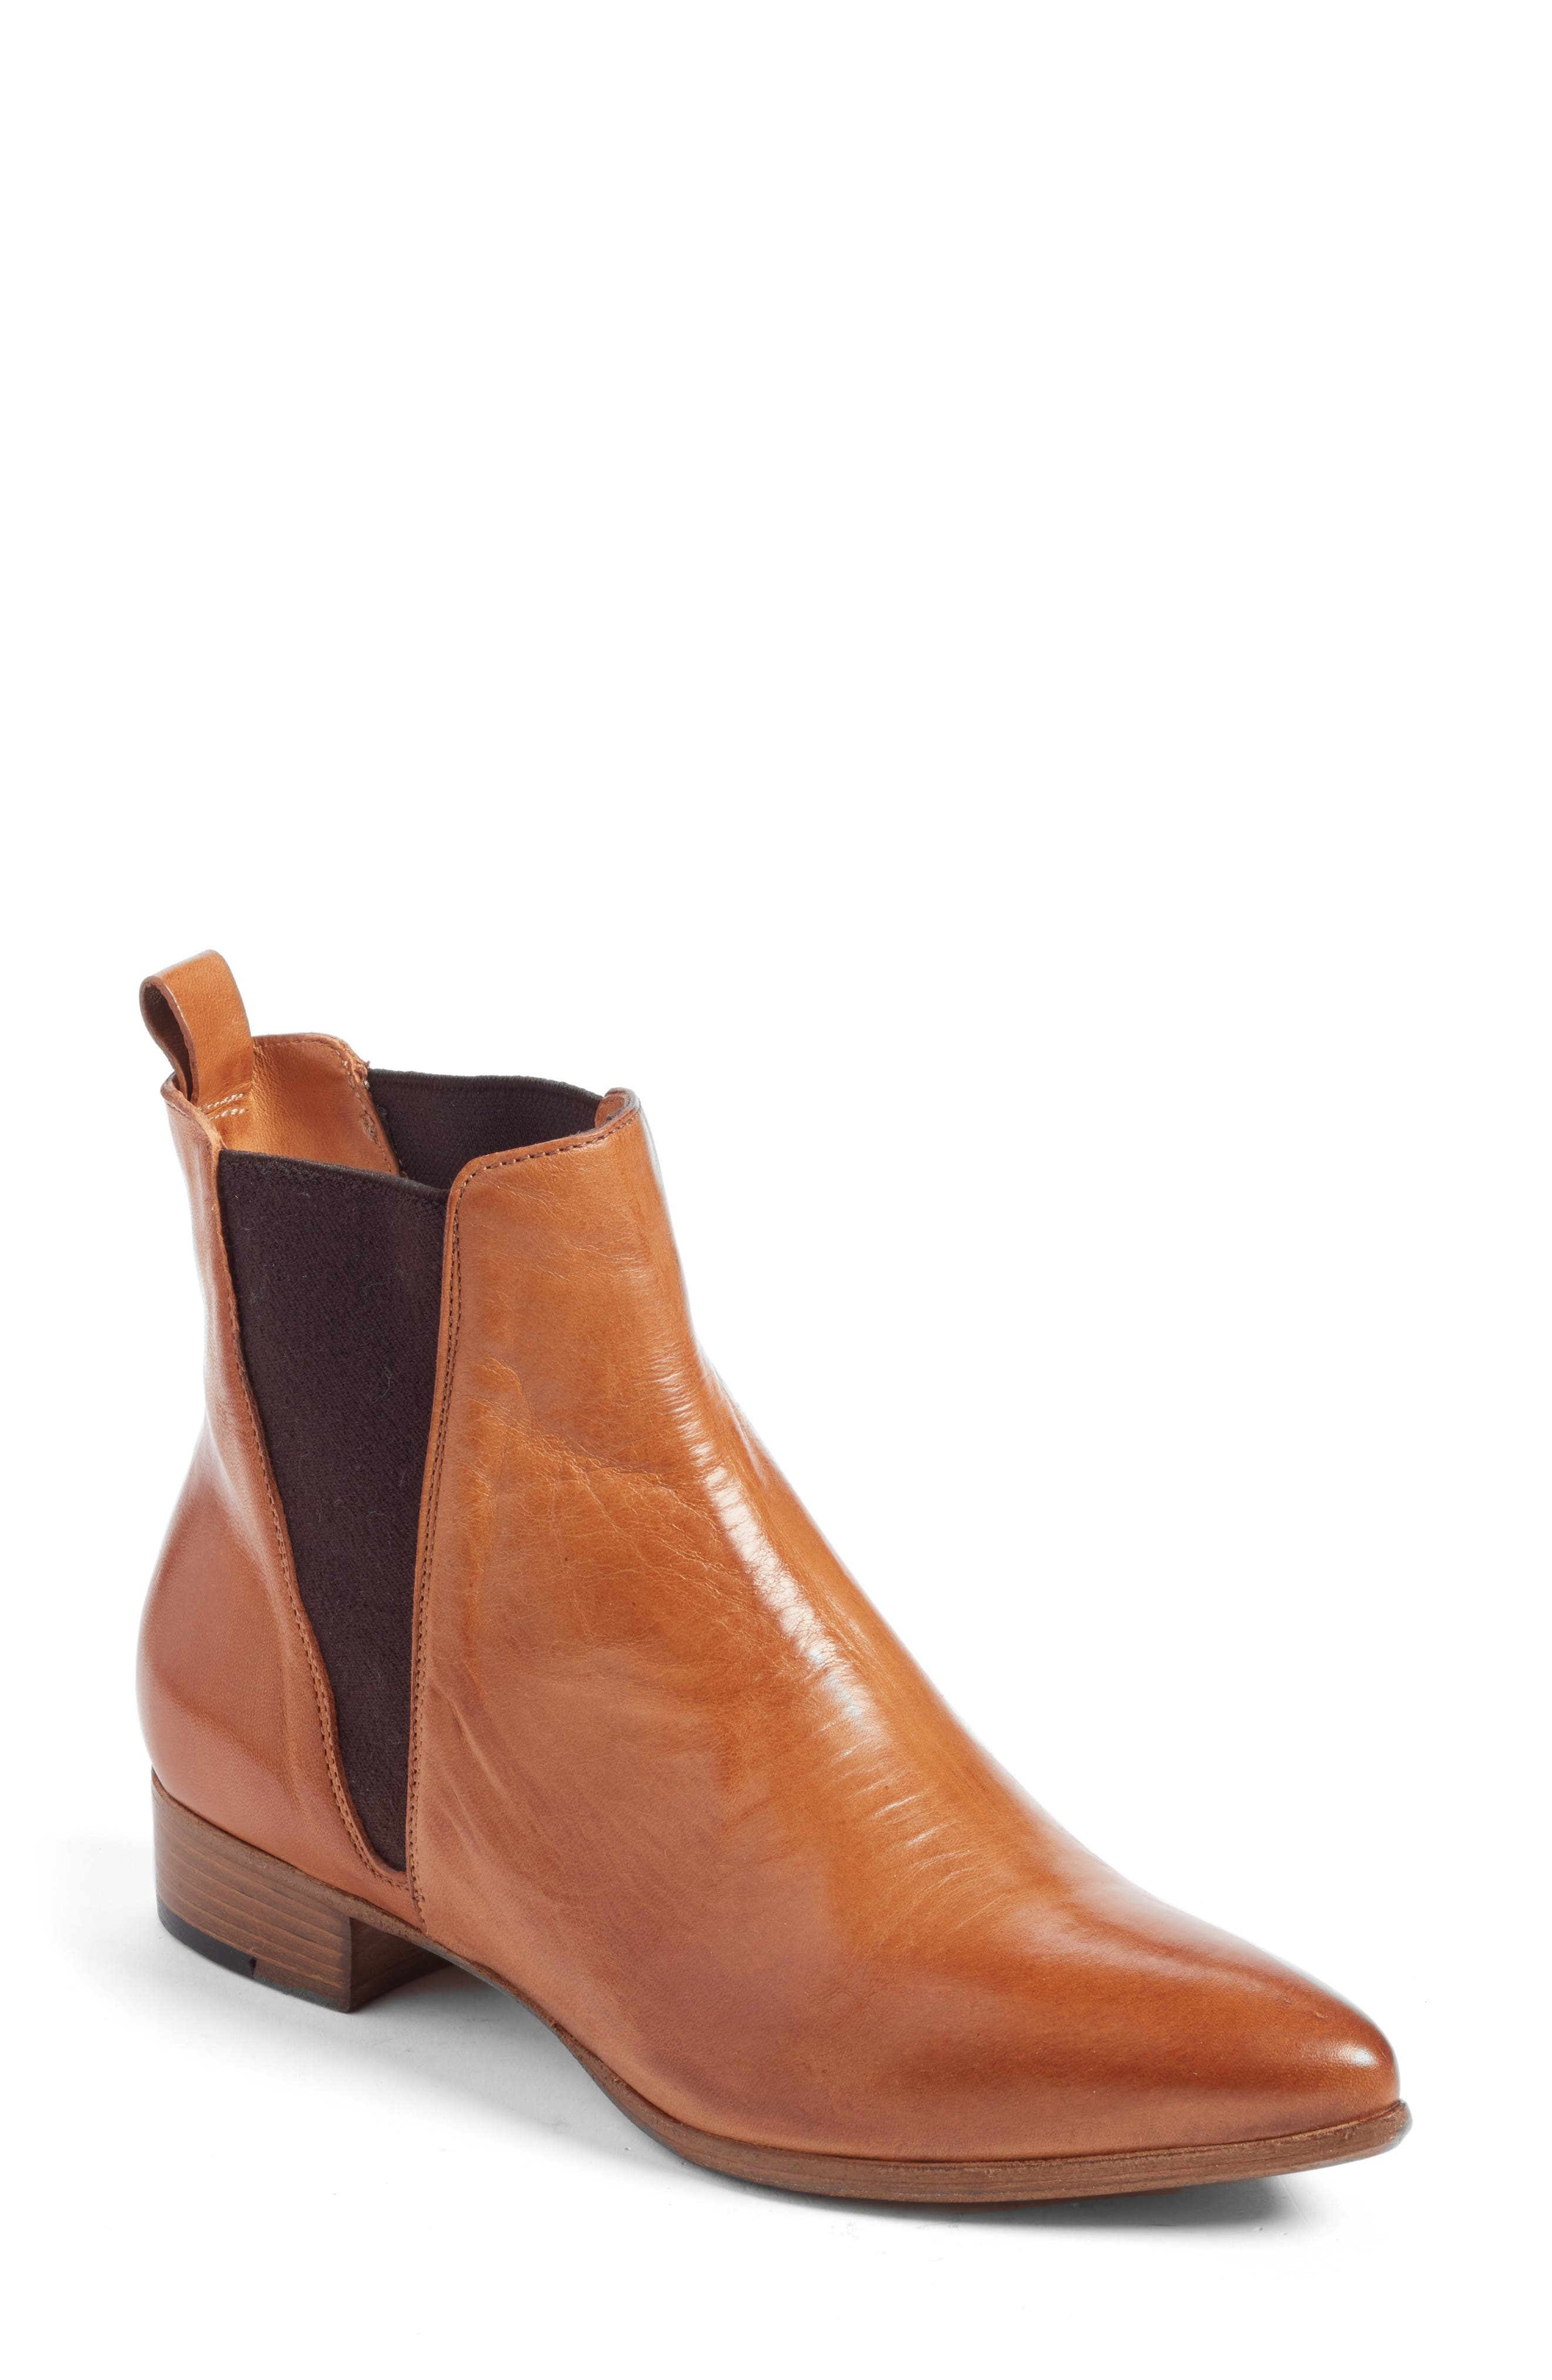 Brenna Chelsea Bootie,                         Main,                         color, 200